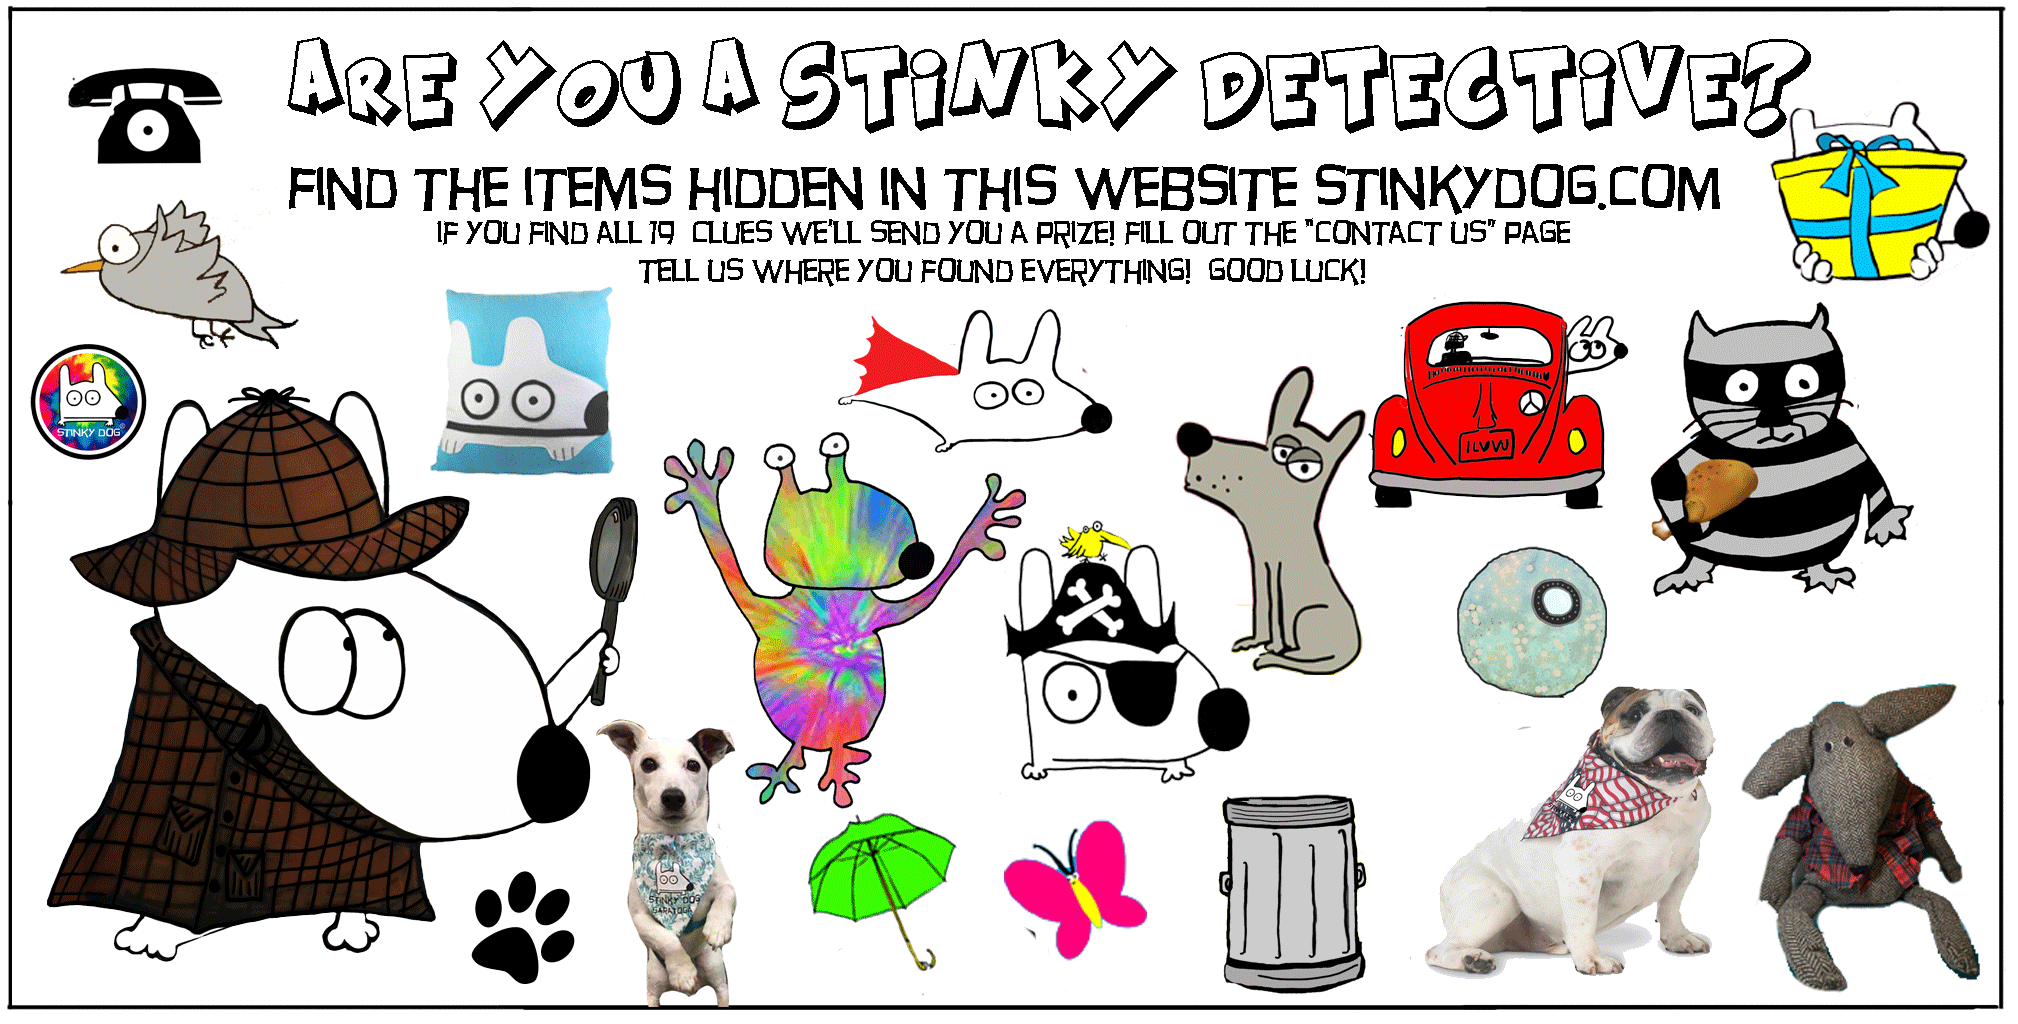 solve the mystery scavenger hunt with the stinky detective